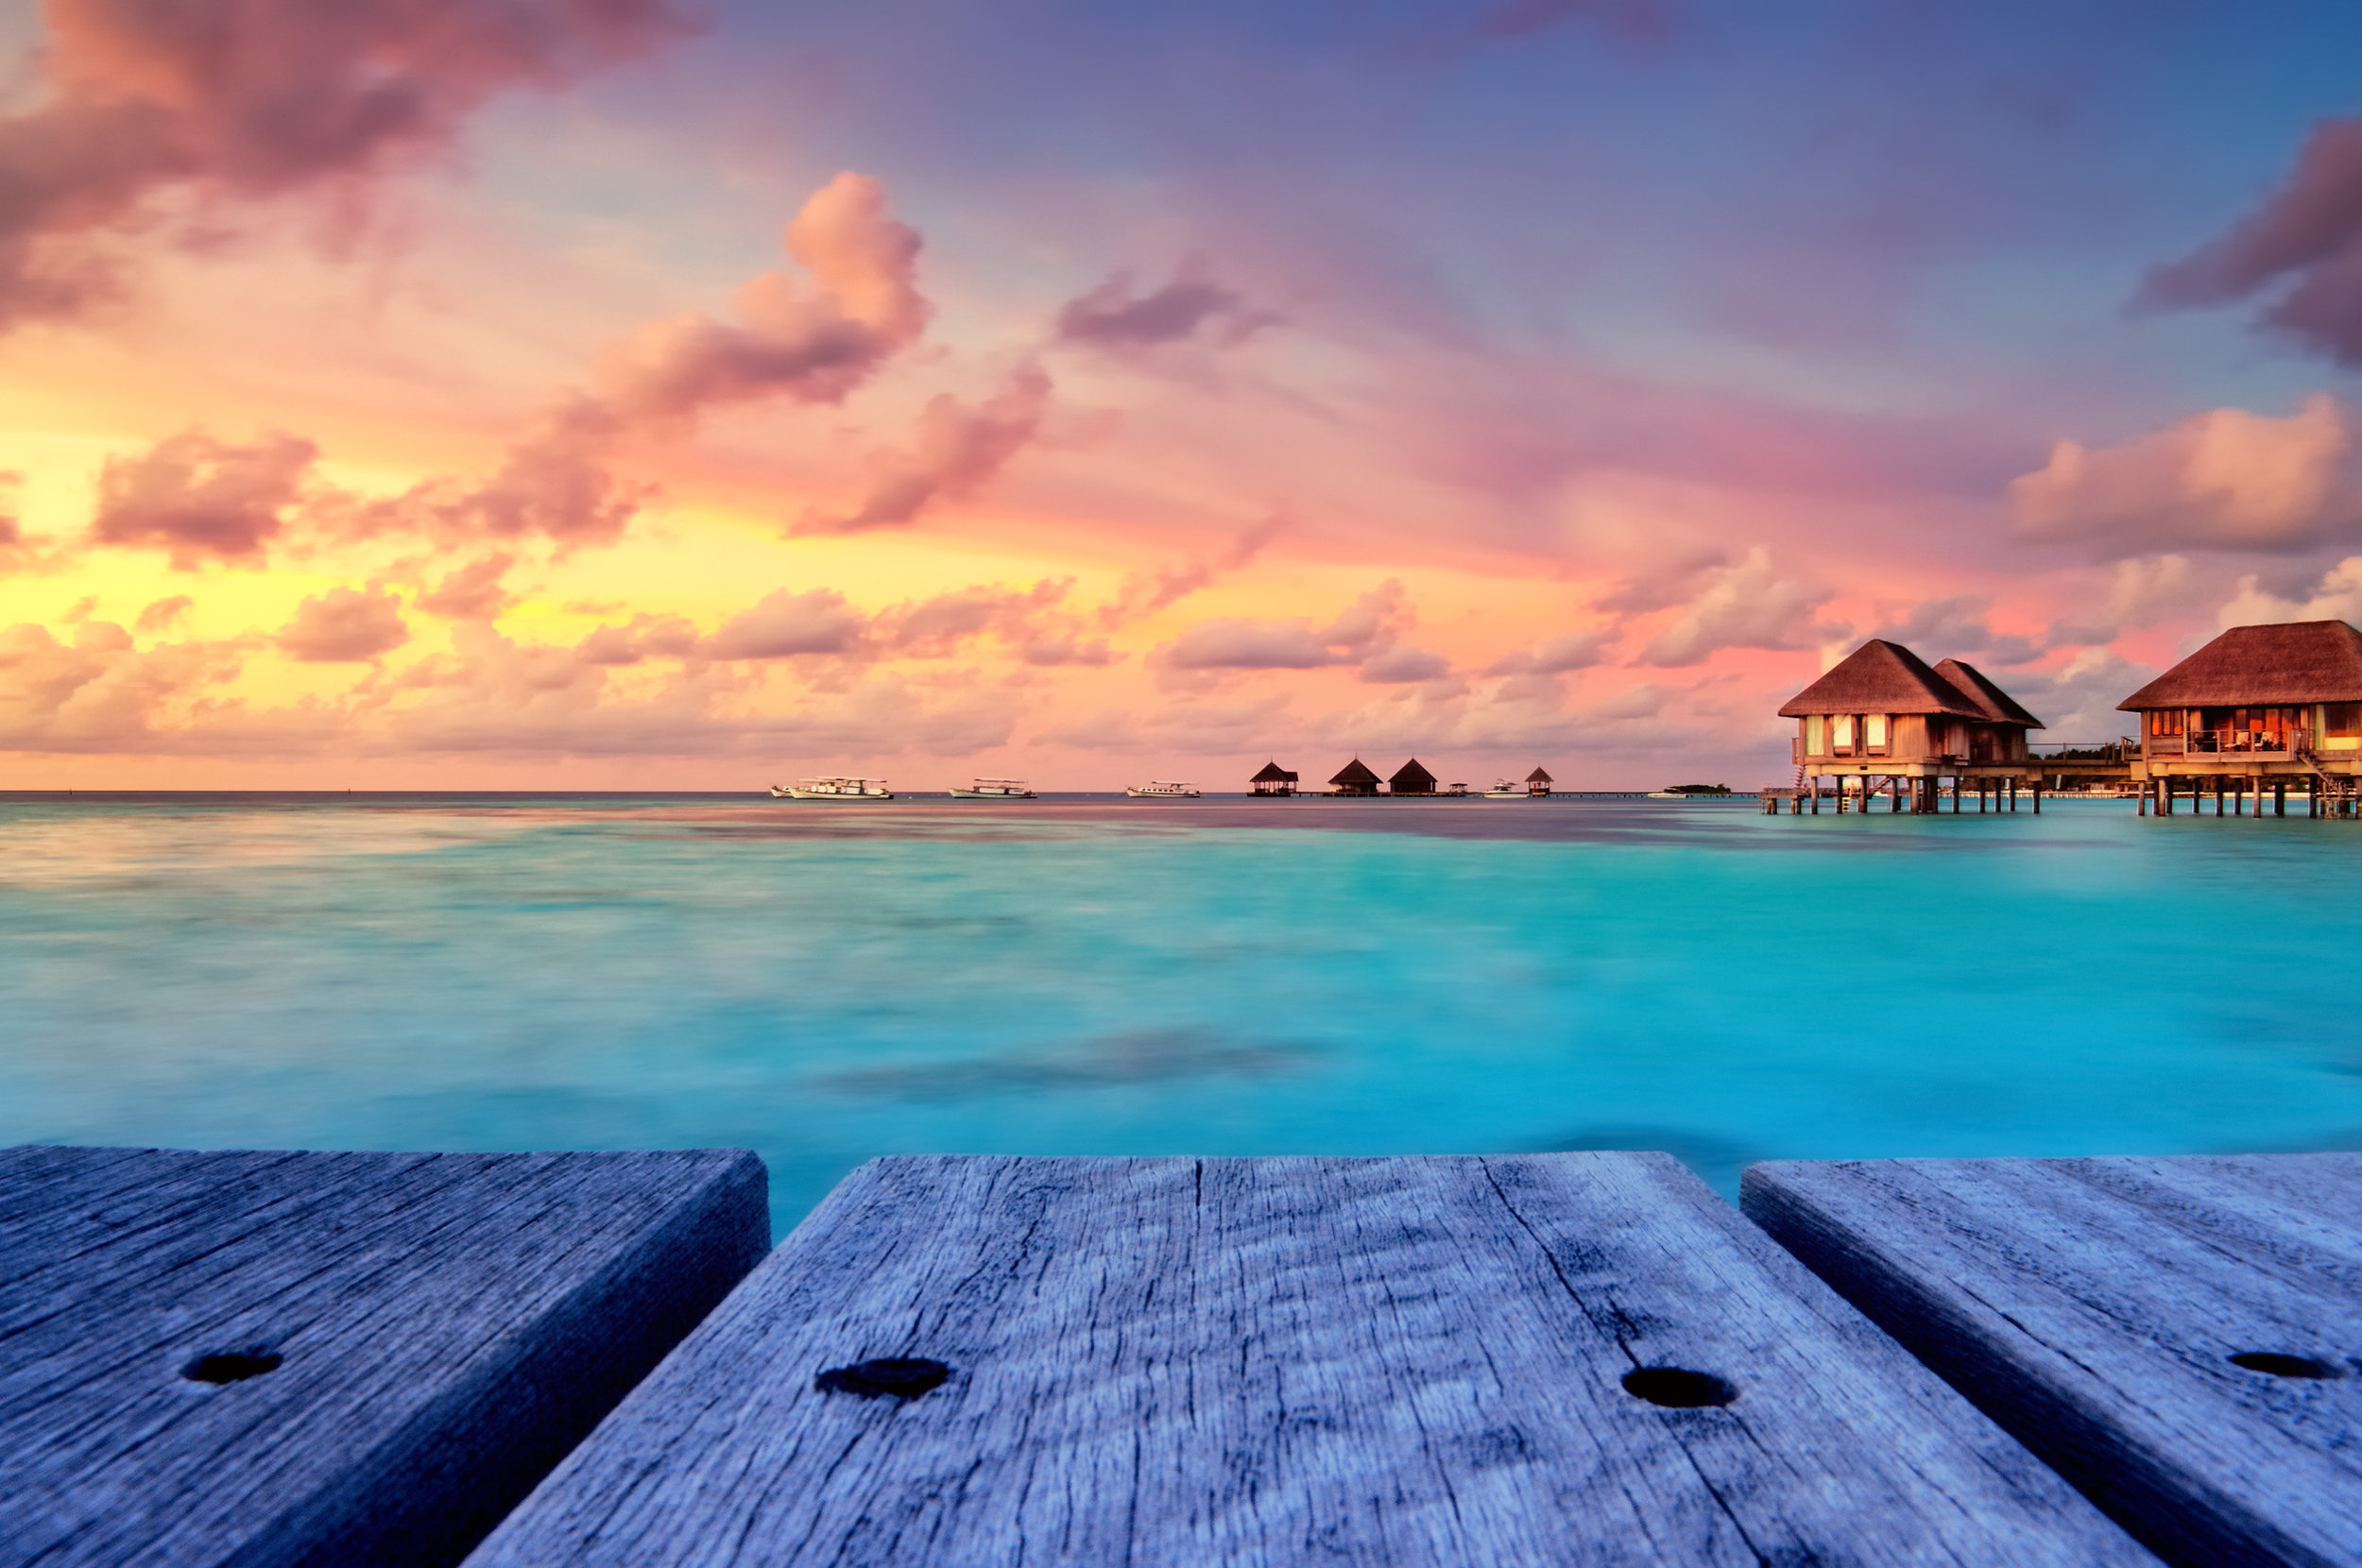 Maldives Holidays - Deals on Luxury Maldives Island Resorts